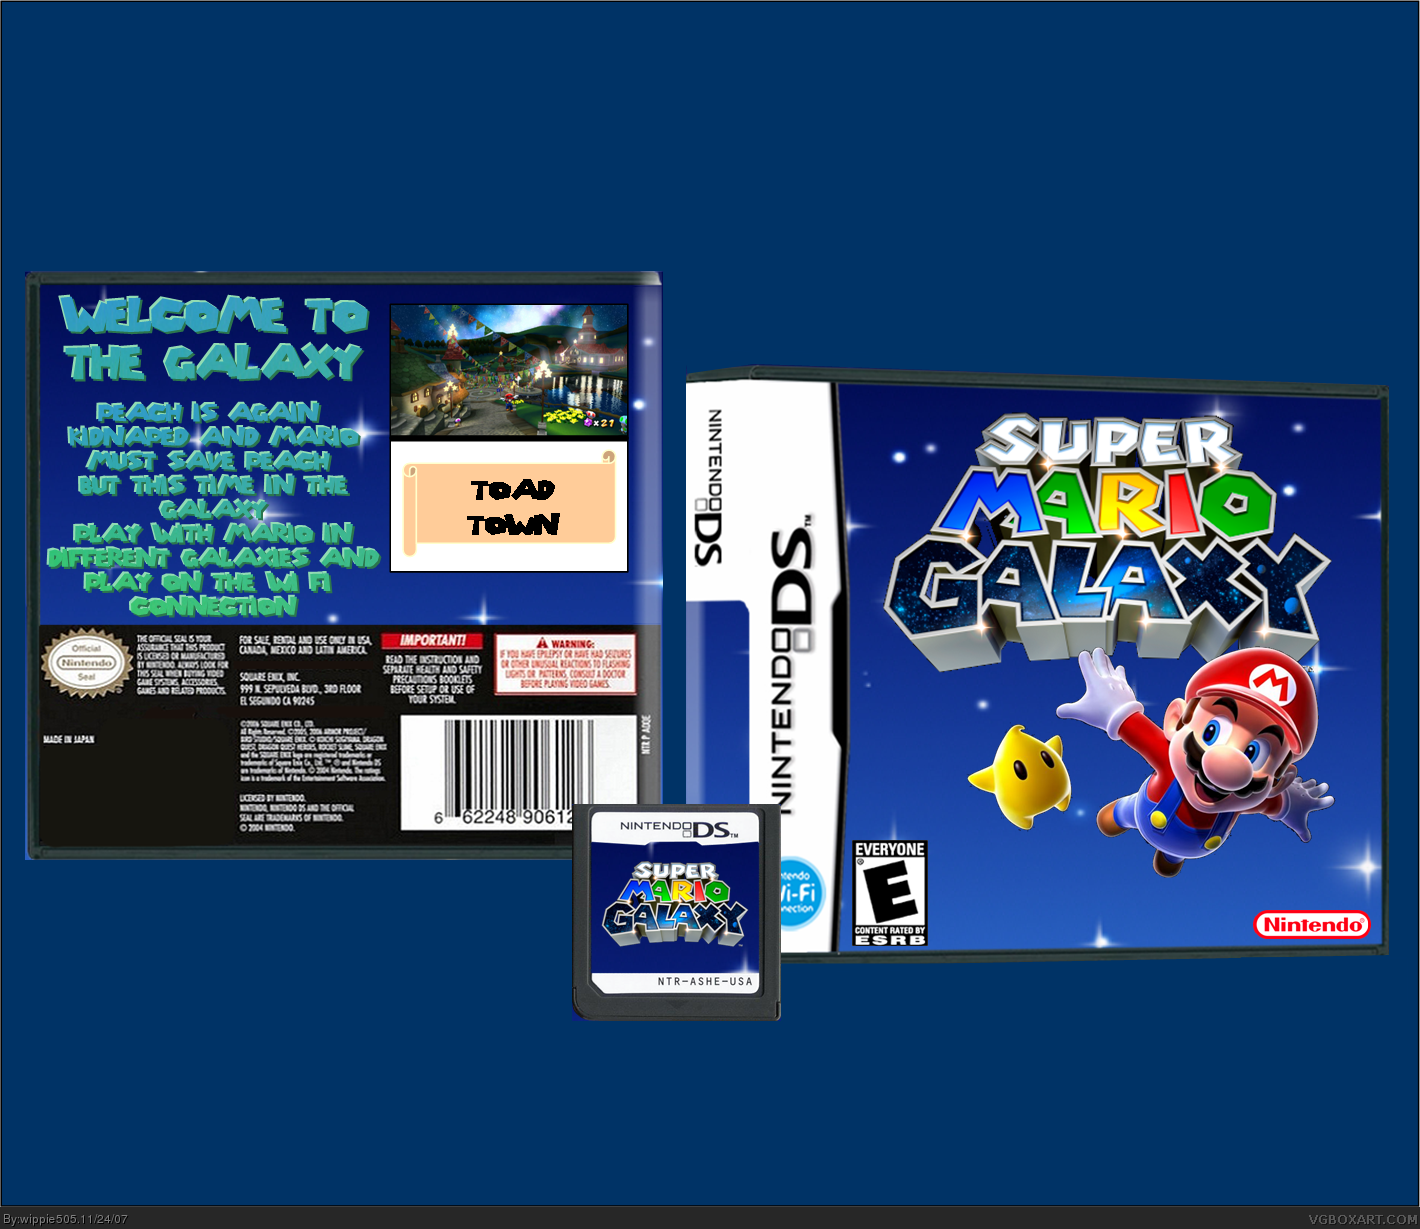 Super Mario Galaxy box cover